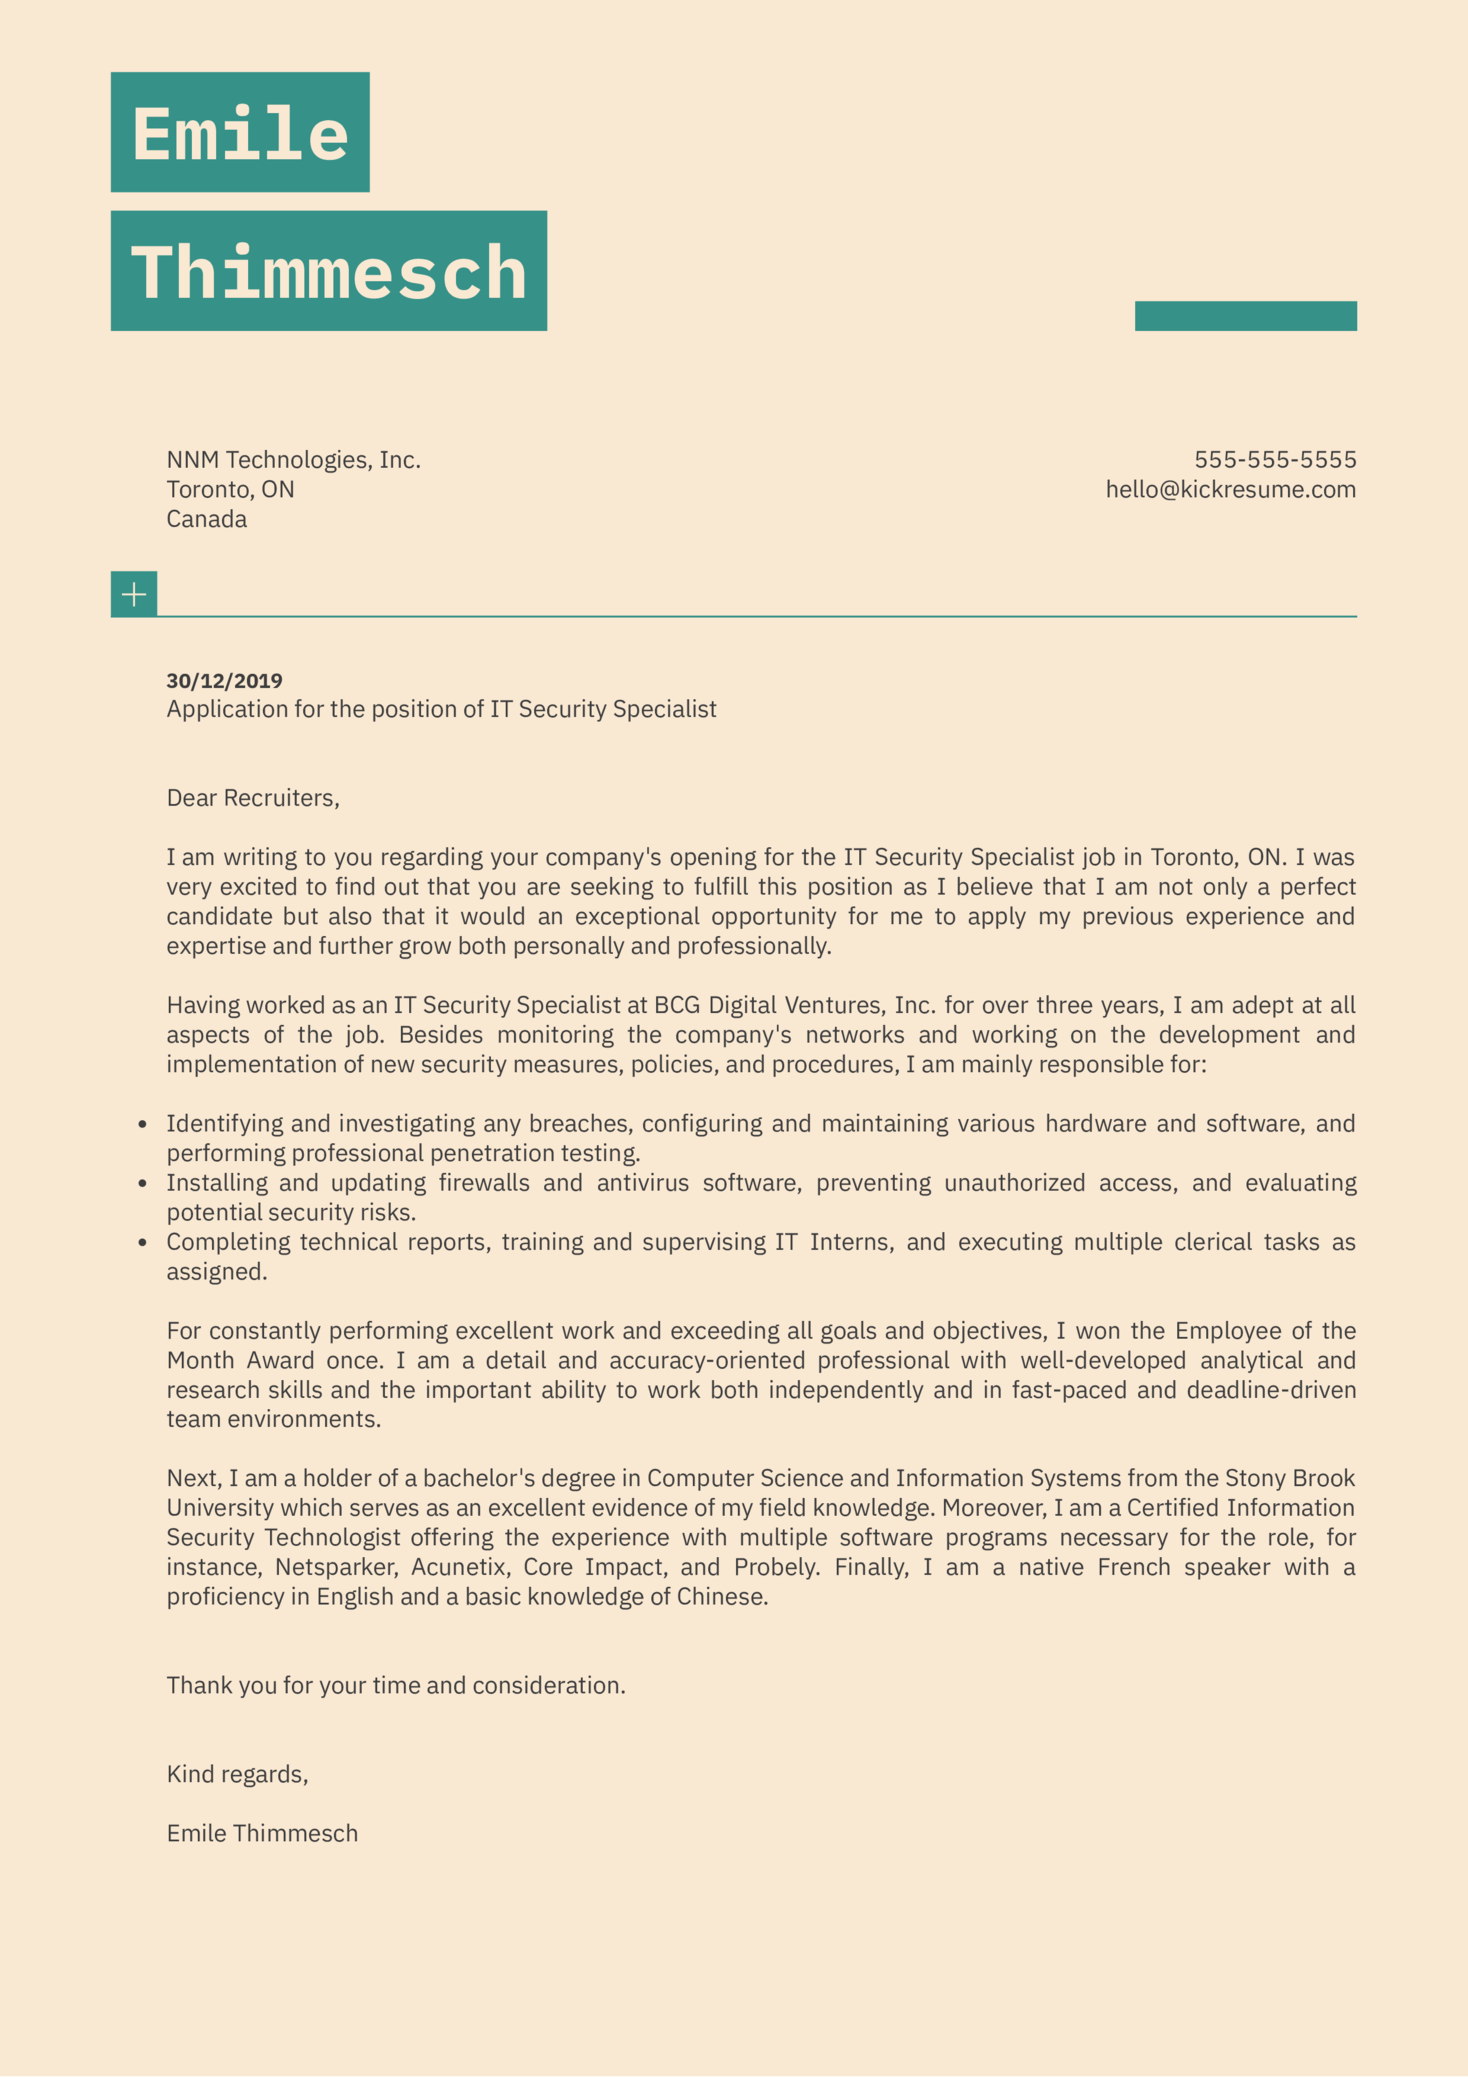 IT Security Specialist Cover Letter Sample